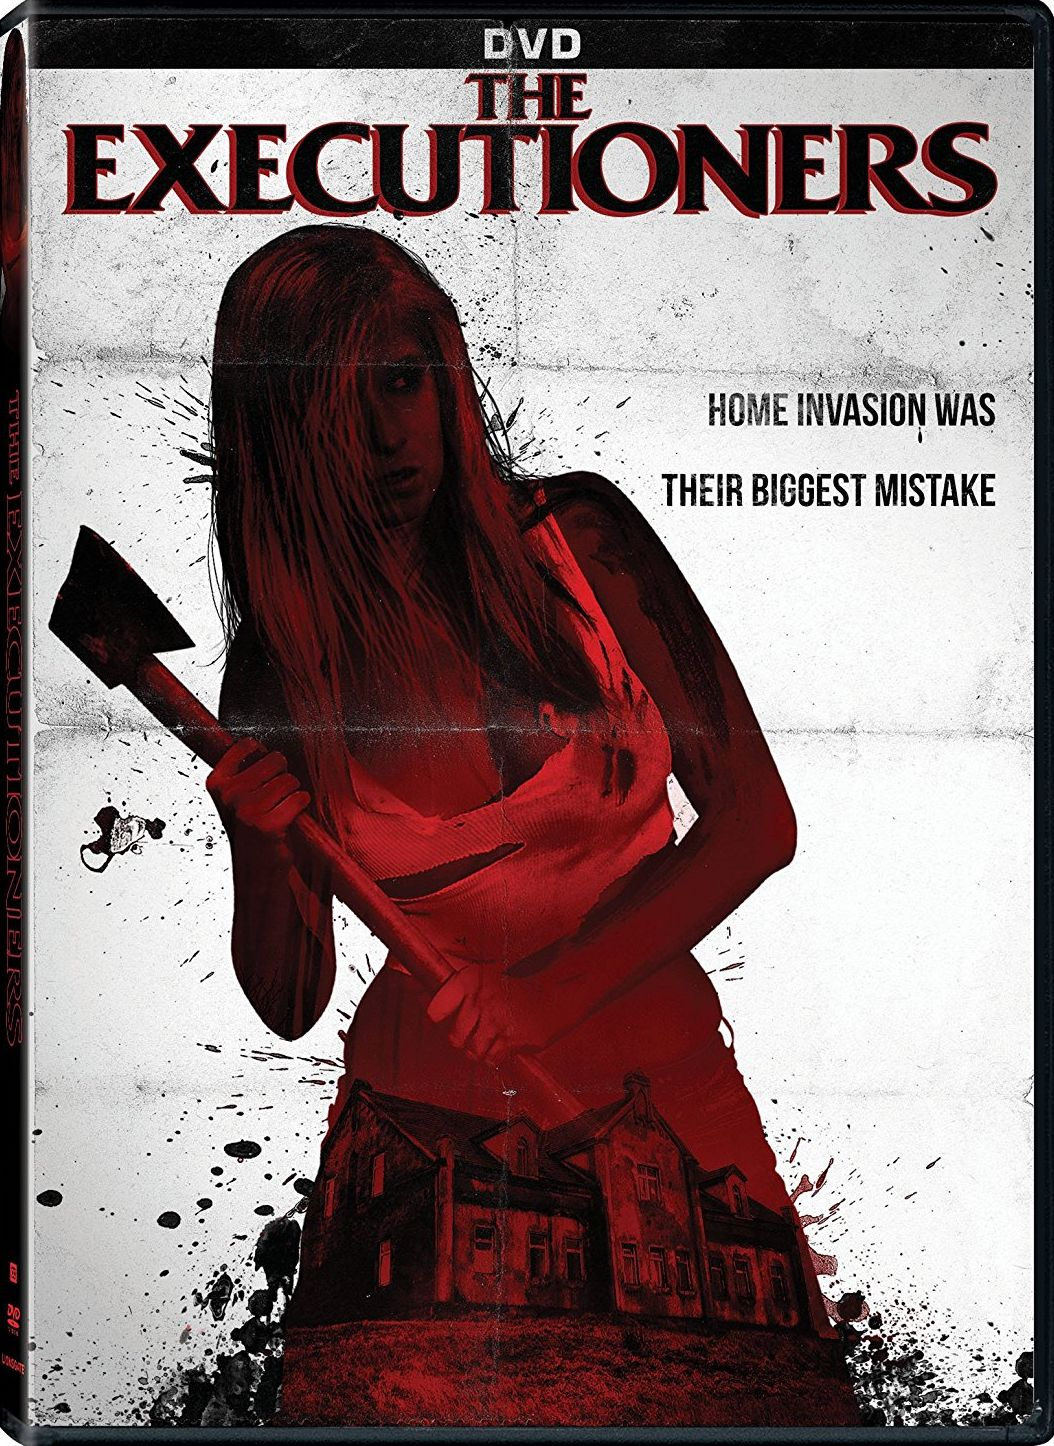 The Executioners Dvd Lionsgate Streaming Movies Online Full Movies Free Movies Online